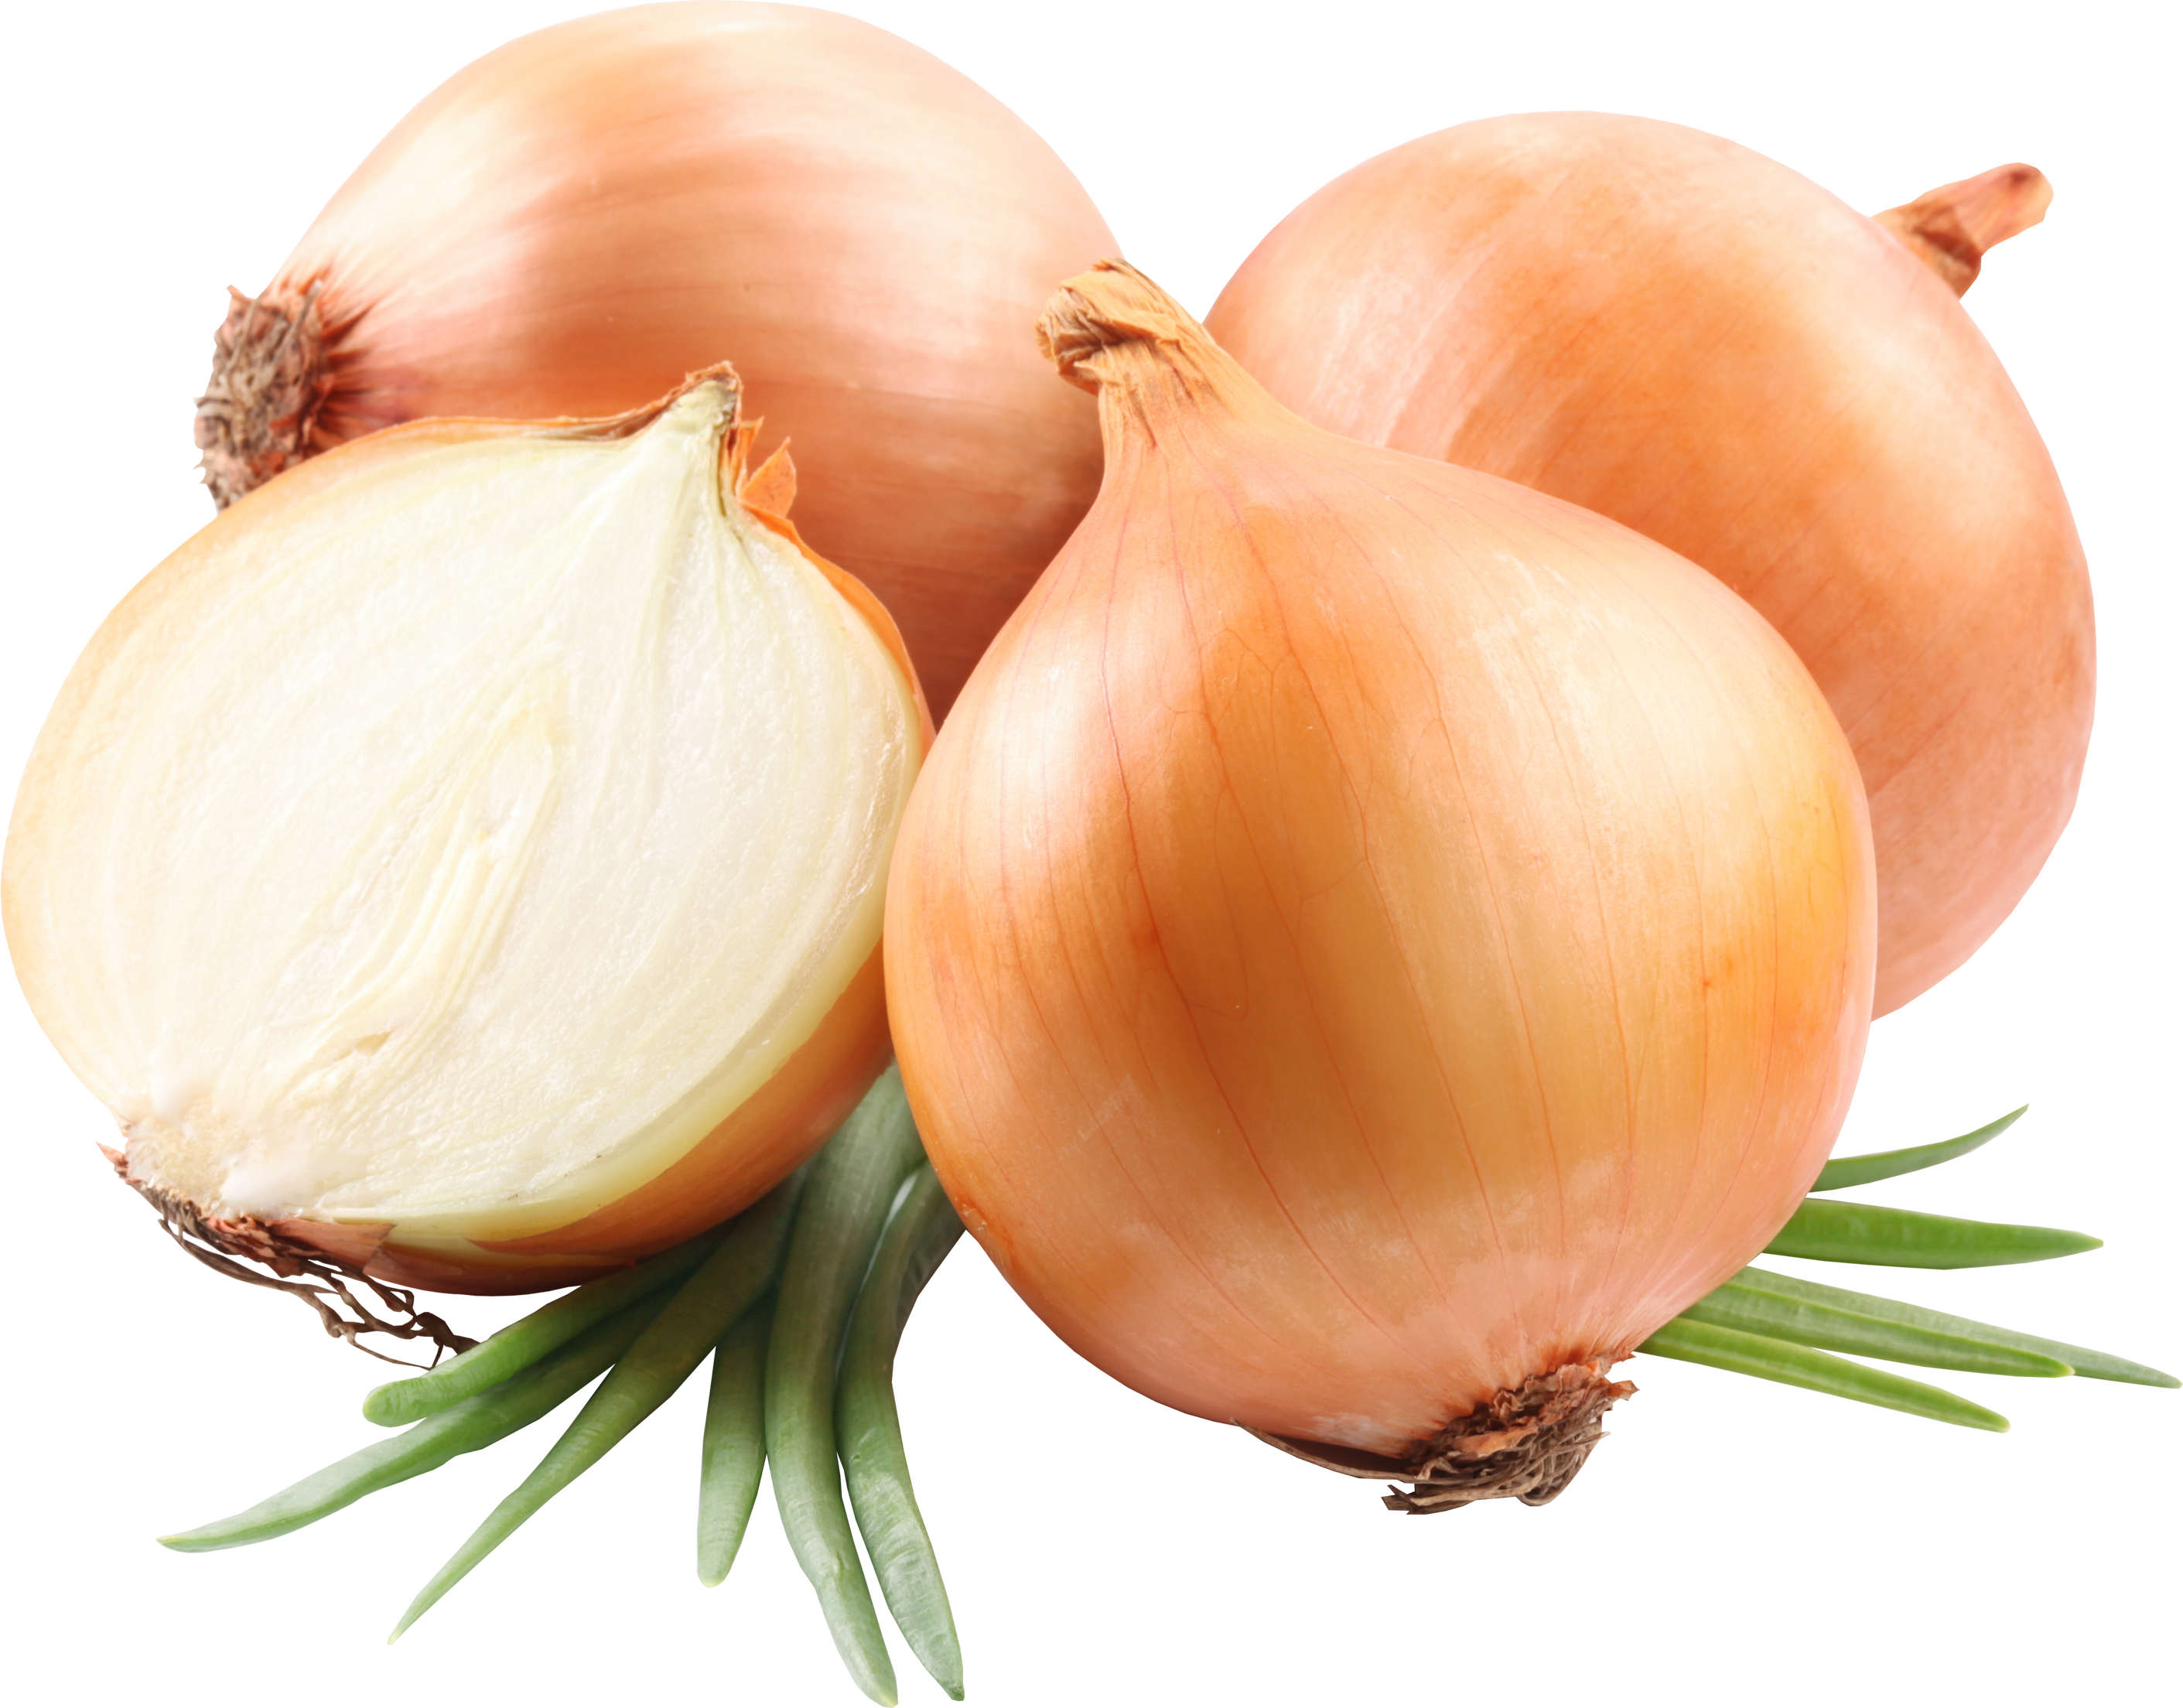 Fresh Onion Vegetable 195.88 Kb